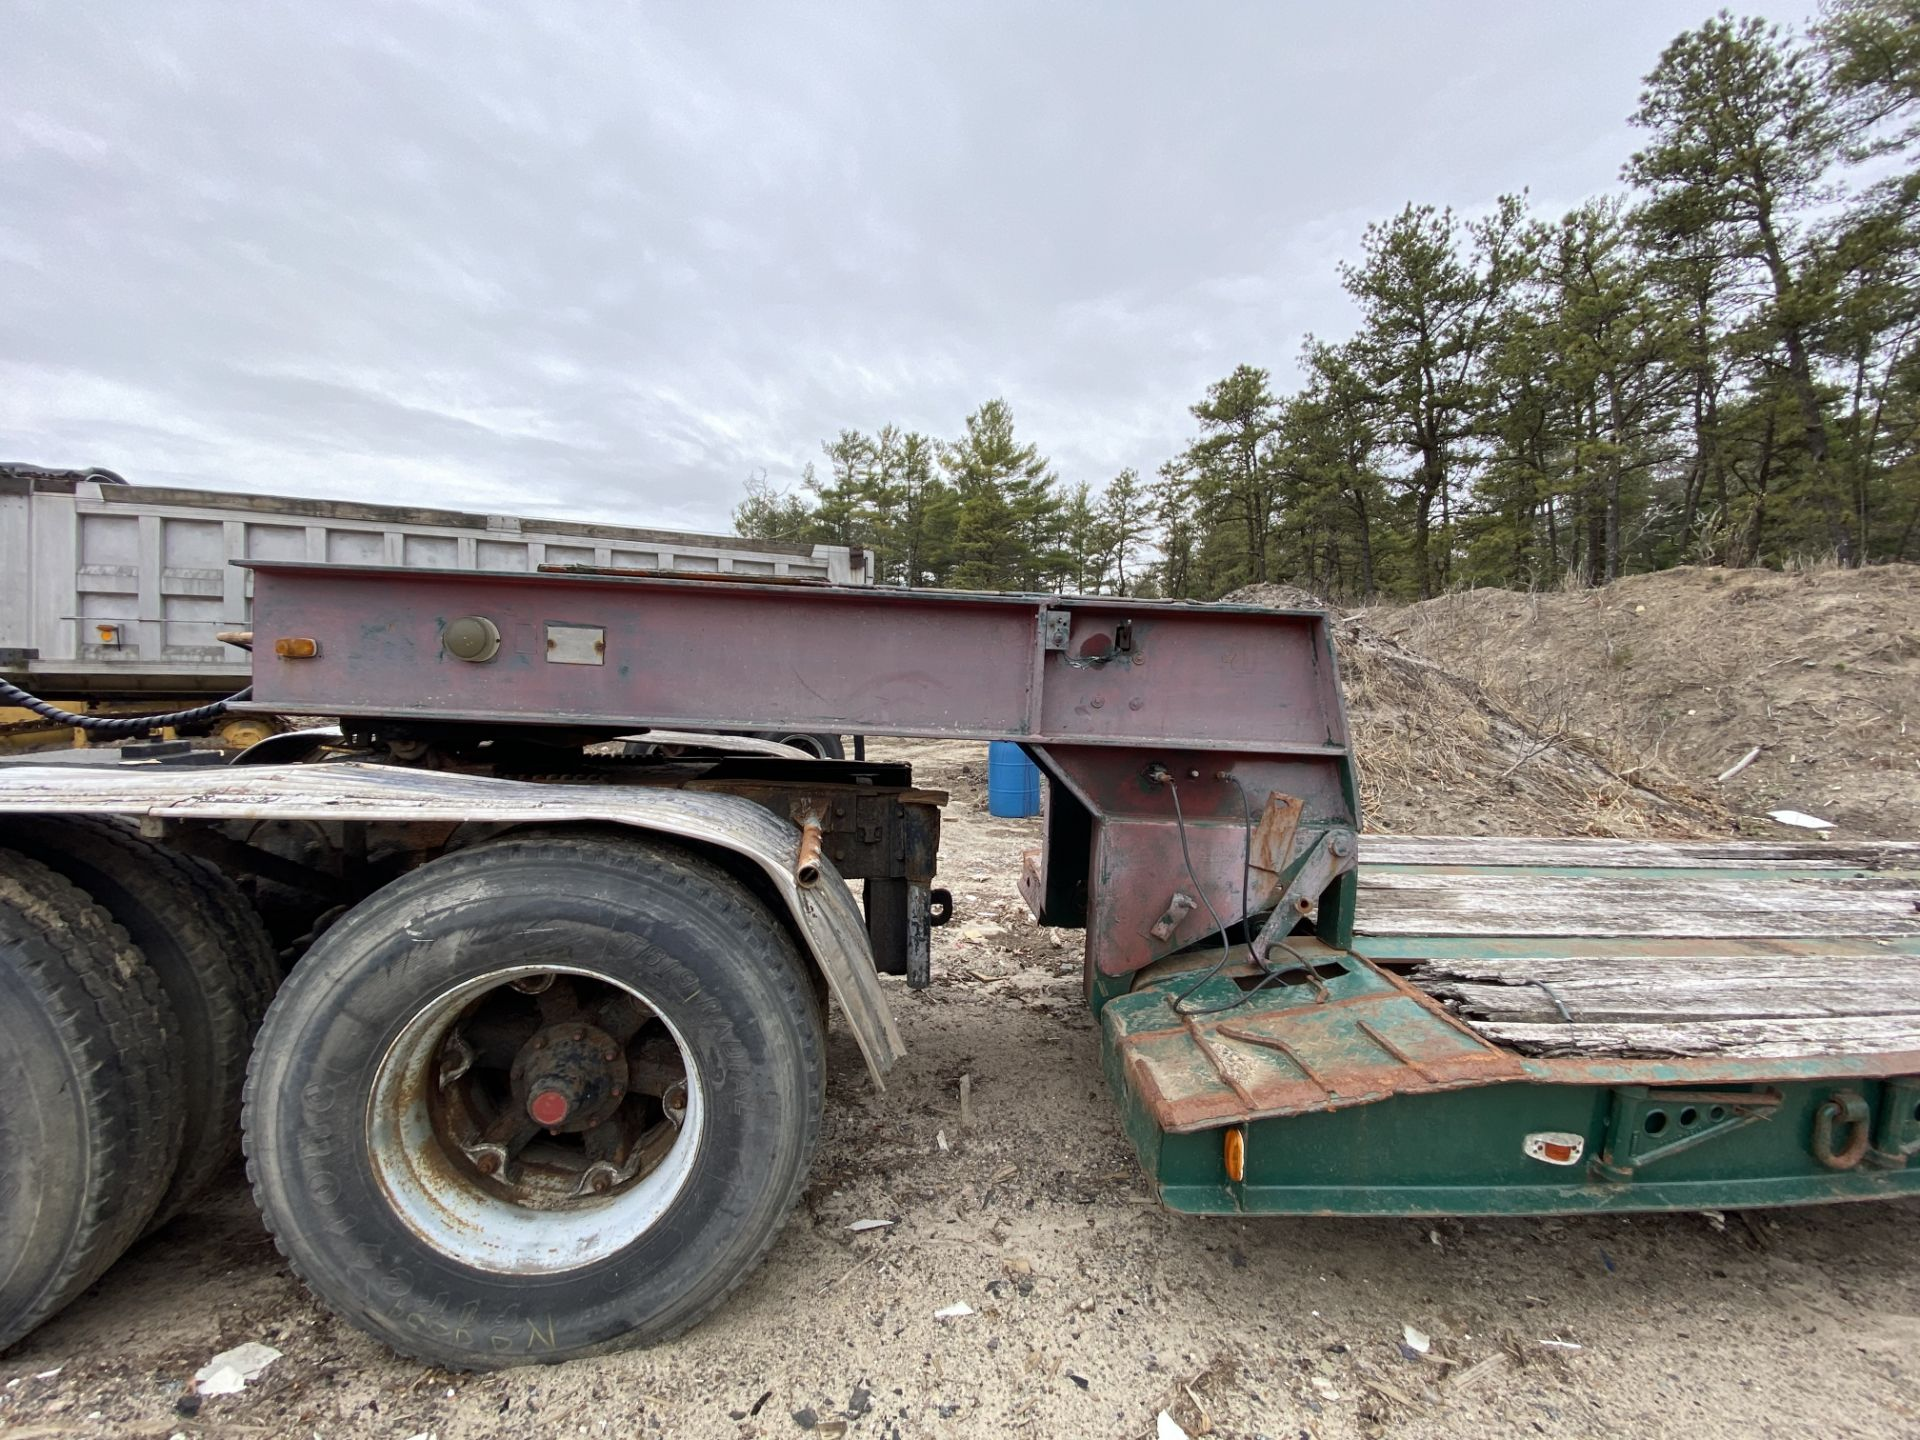 1973 General 35 Ton Low Bed Trailer VIN 35GHG73378R, Have Title - Image 2 of 11